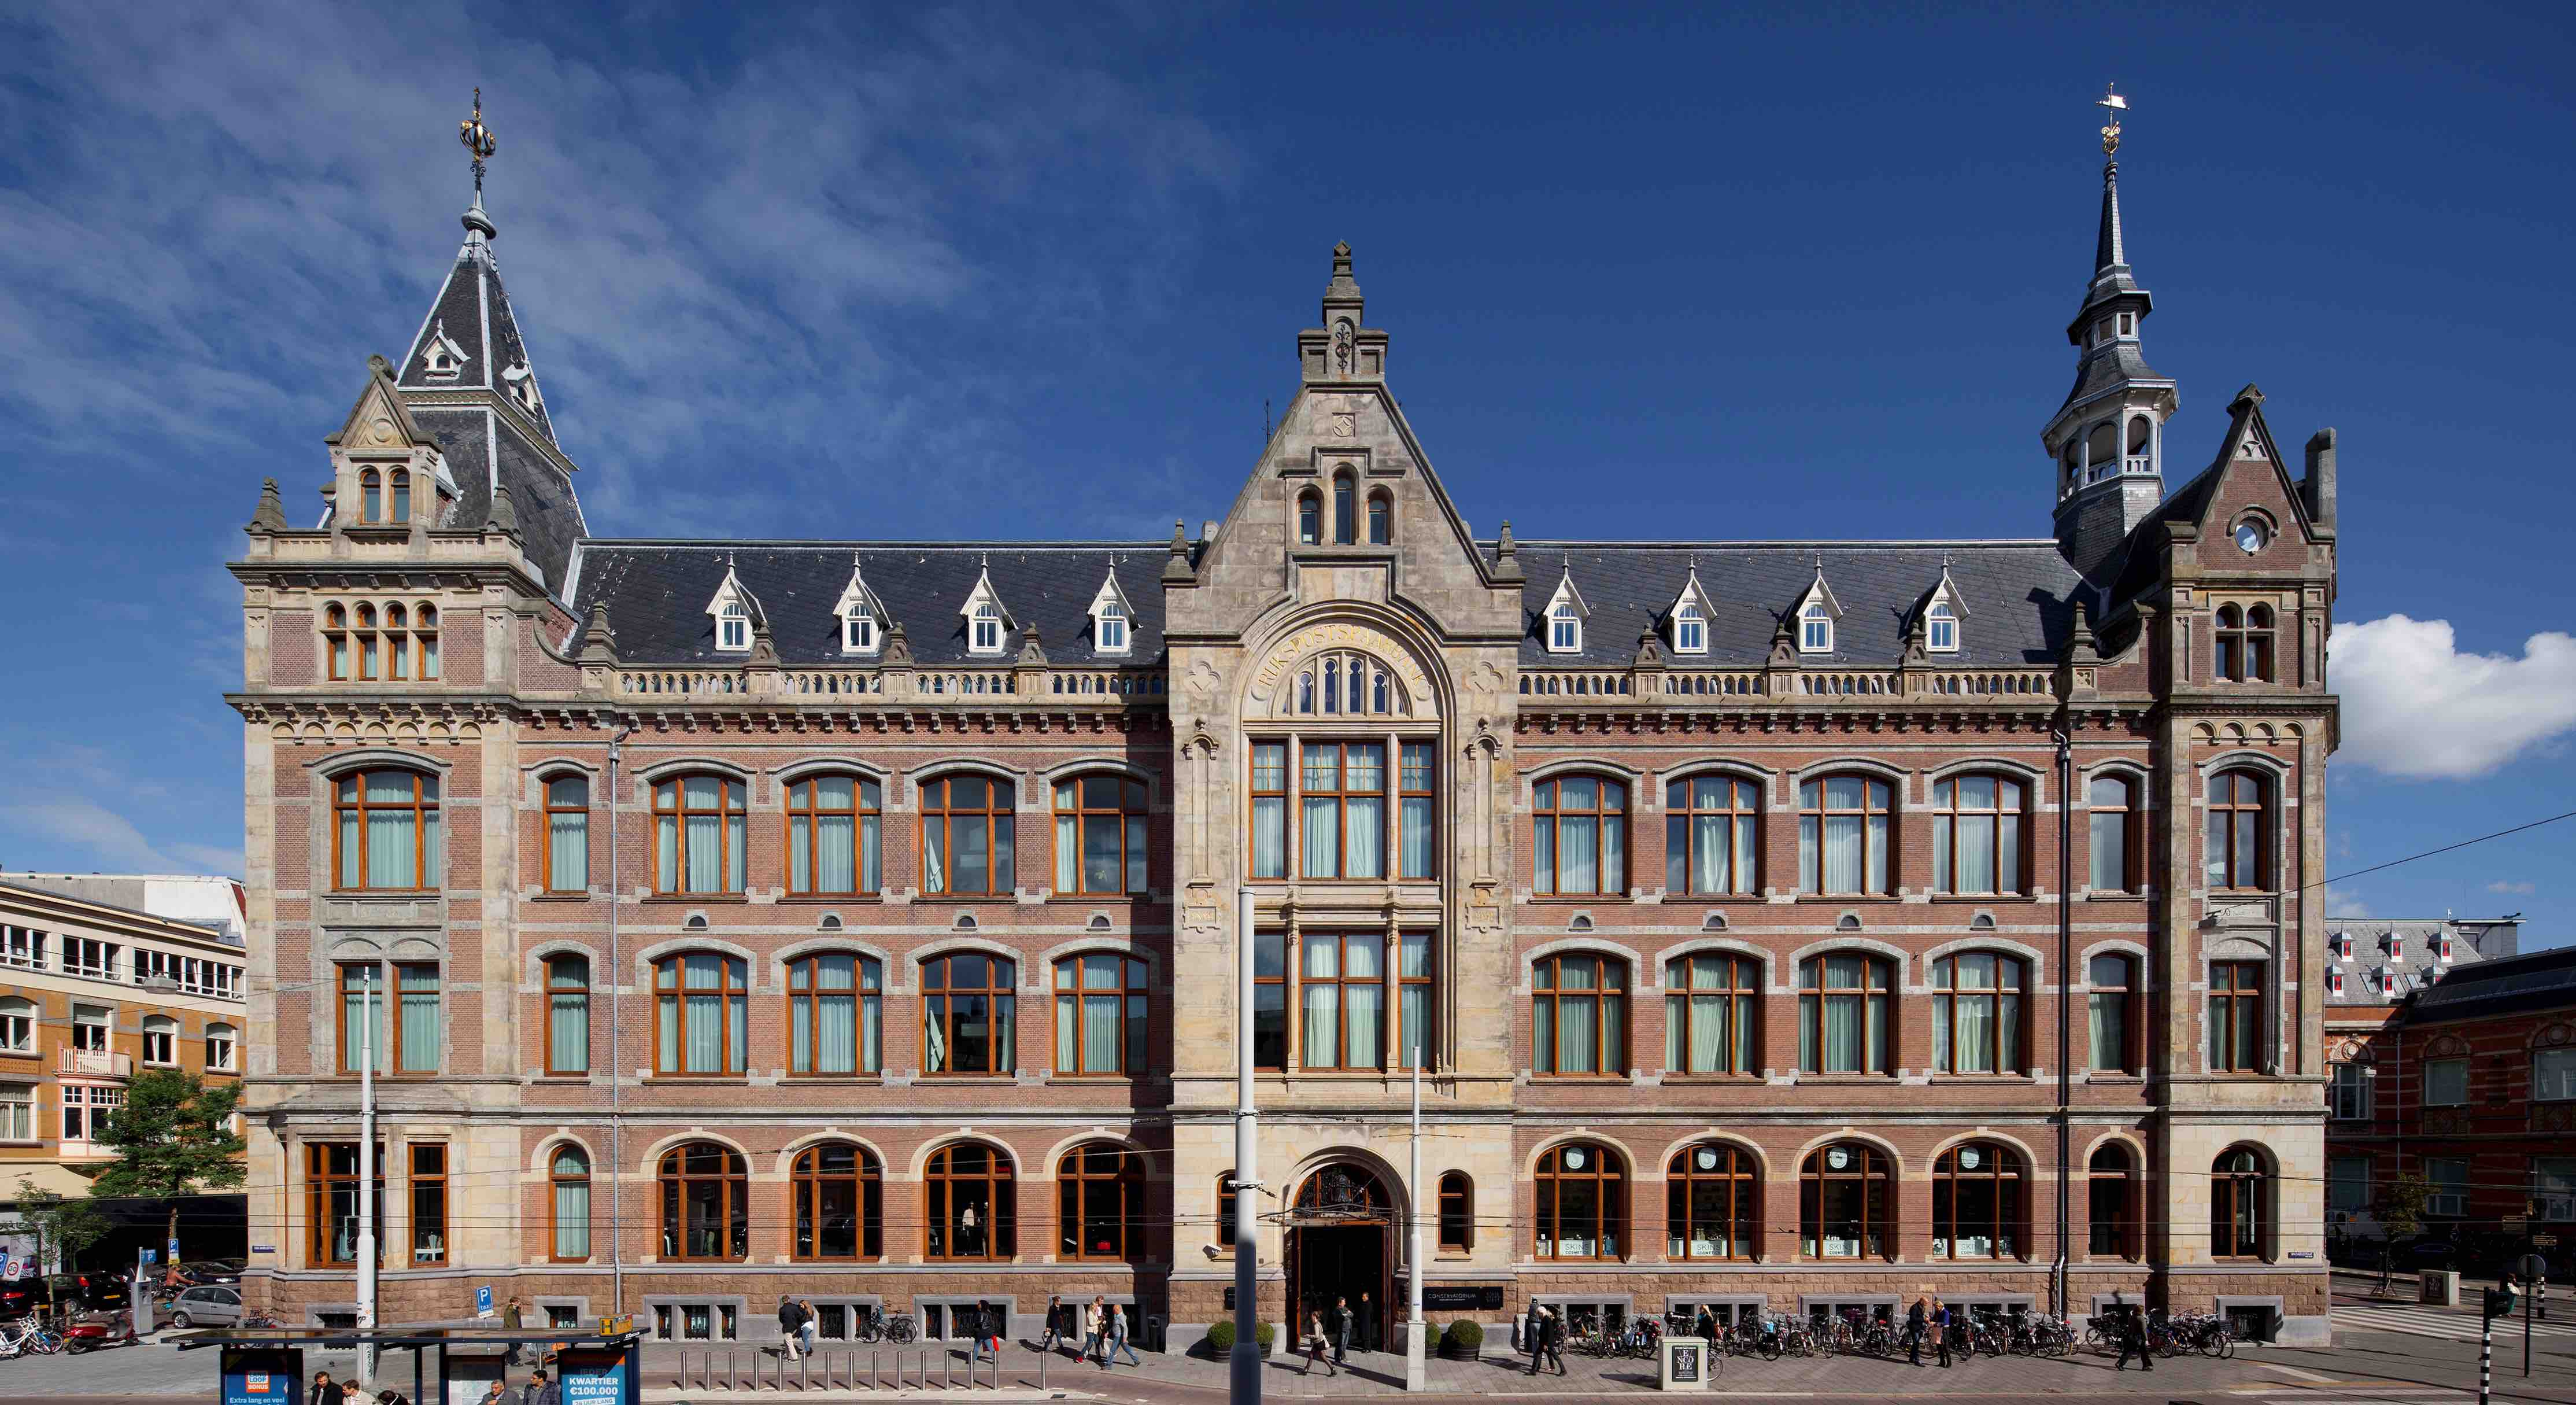 Standing on the landmark site of Amsterdam's former Sweelinck Conservatory of Music, the Conservatorium hotel in Amsterdam opened at the end of 2011. This magnificent Neo-Gothic building was originally designed by Daniel Knuttel in the 19th Century and in its new incarnation, it has been transformed into a contemporary luxury lifestyle hotel by the award-winning Italian architect Piero Lissoni.